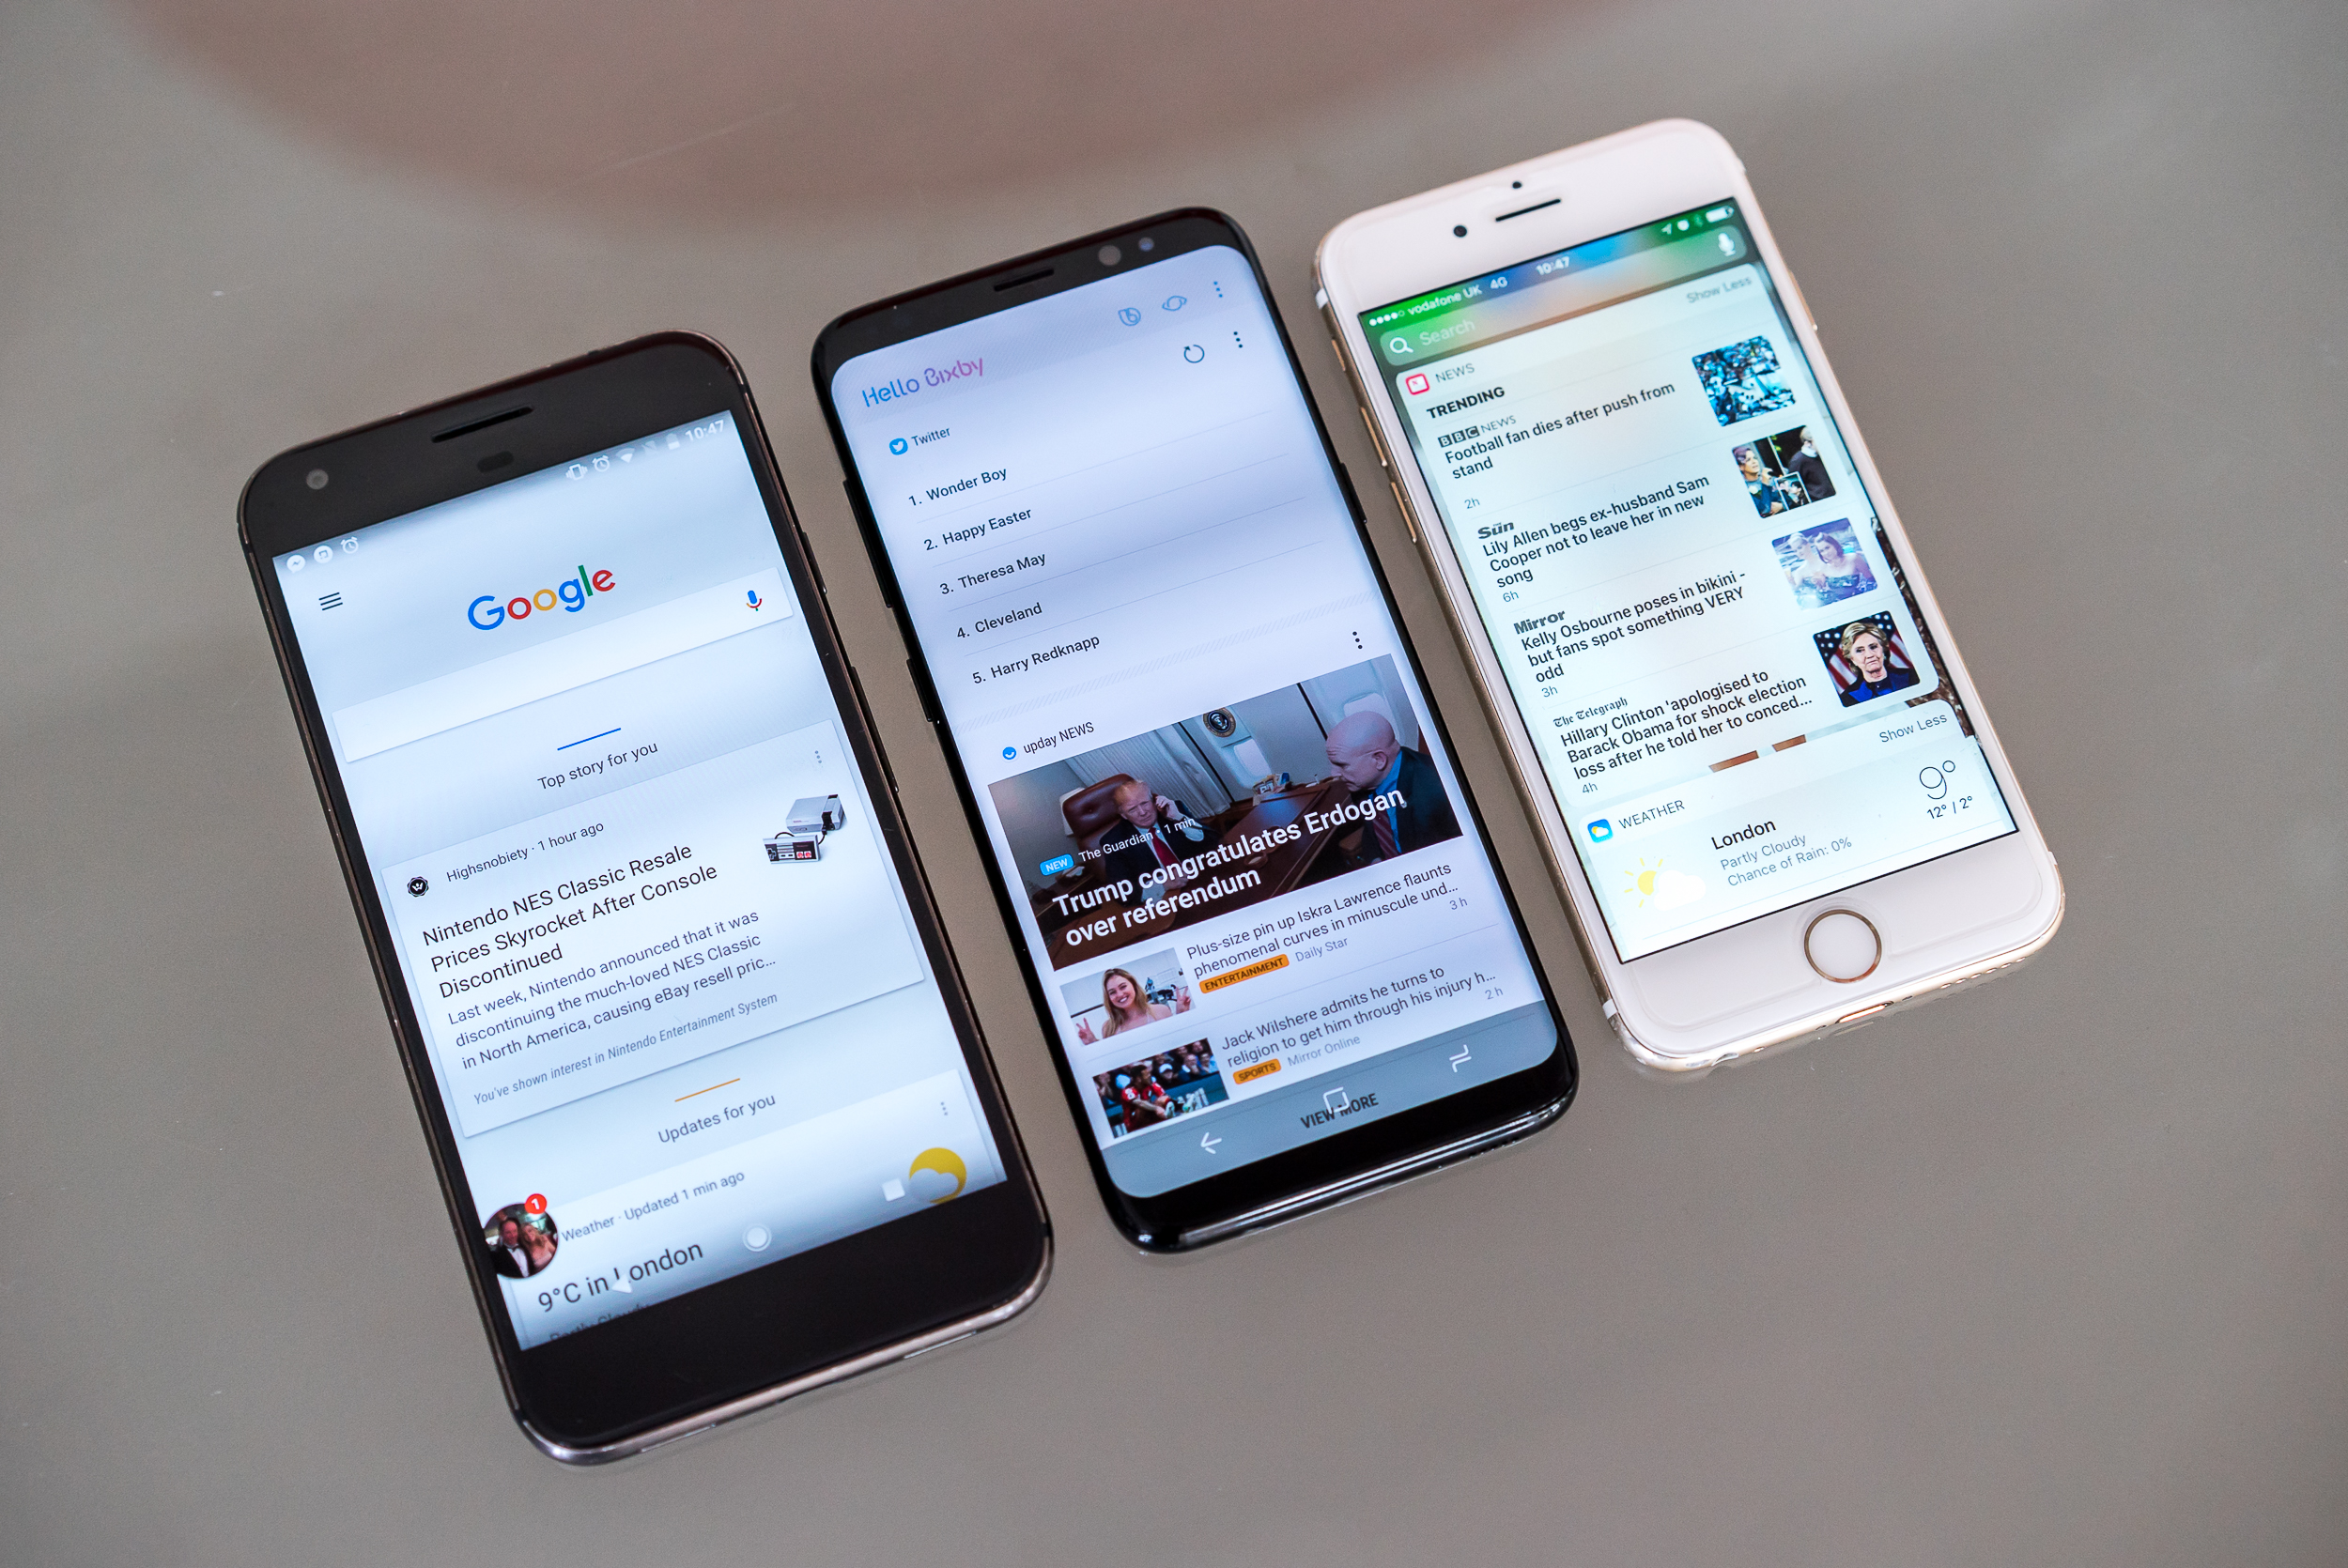 Samsung Galaxy S8 review: Simply irresistible | Ars Technica